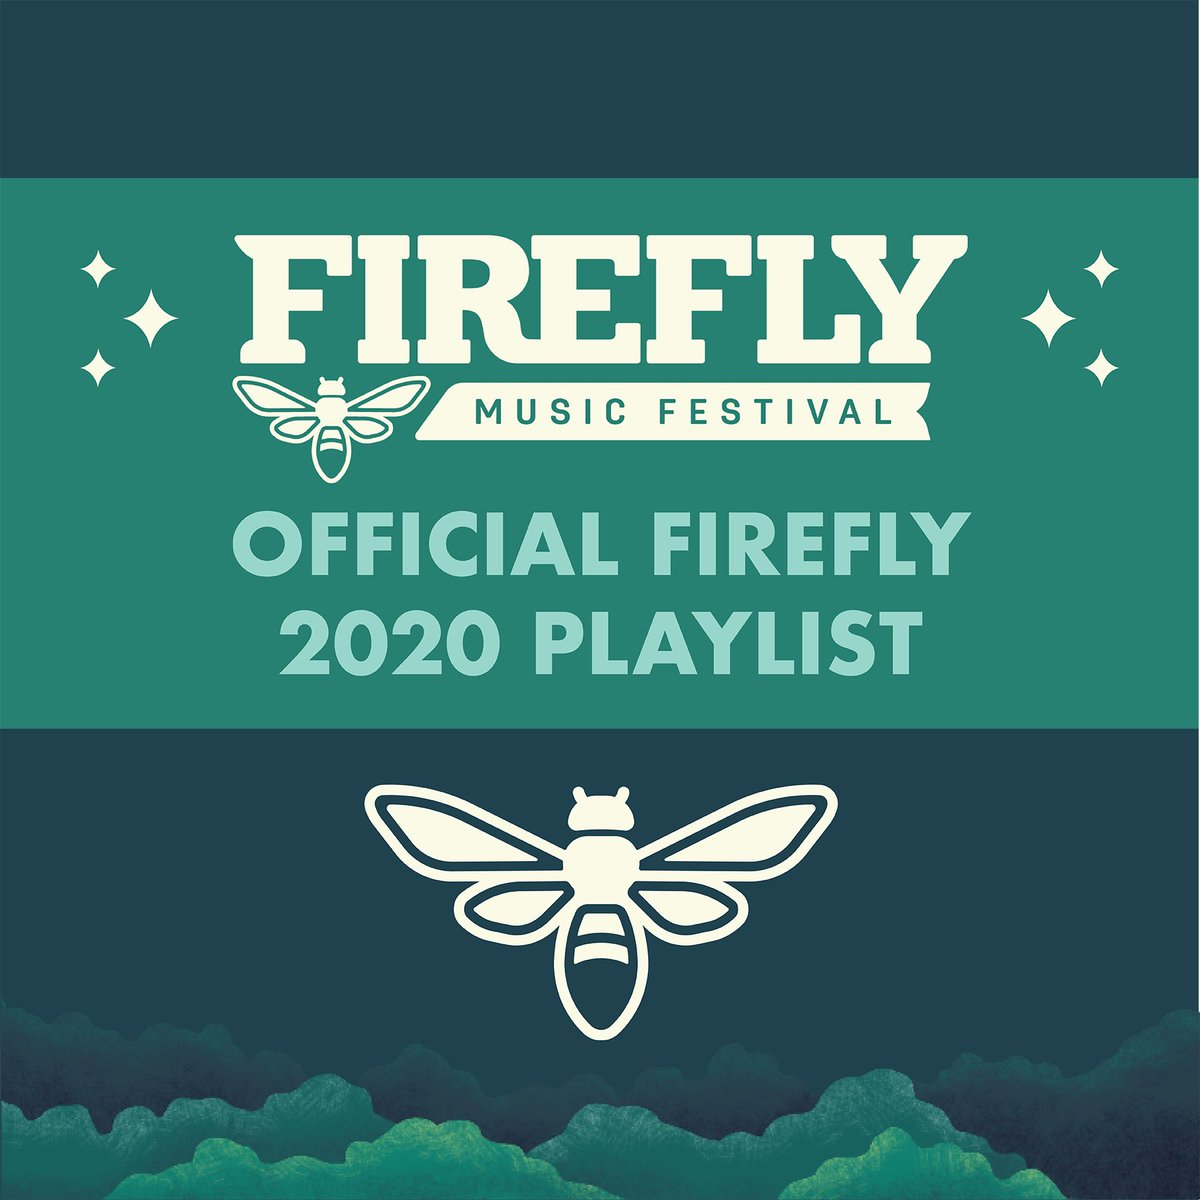 The weekend is here! 🙌 To make it better we updated our Firefly 2020 Playlist to include new tracks from @billieeilish, @ColdWarKids, @craymusic & more. Check it out →  🎶